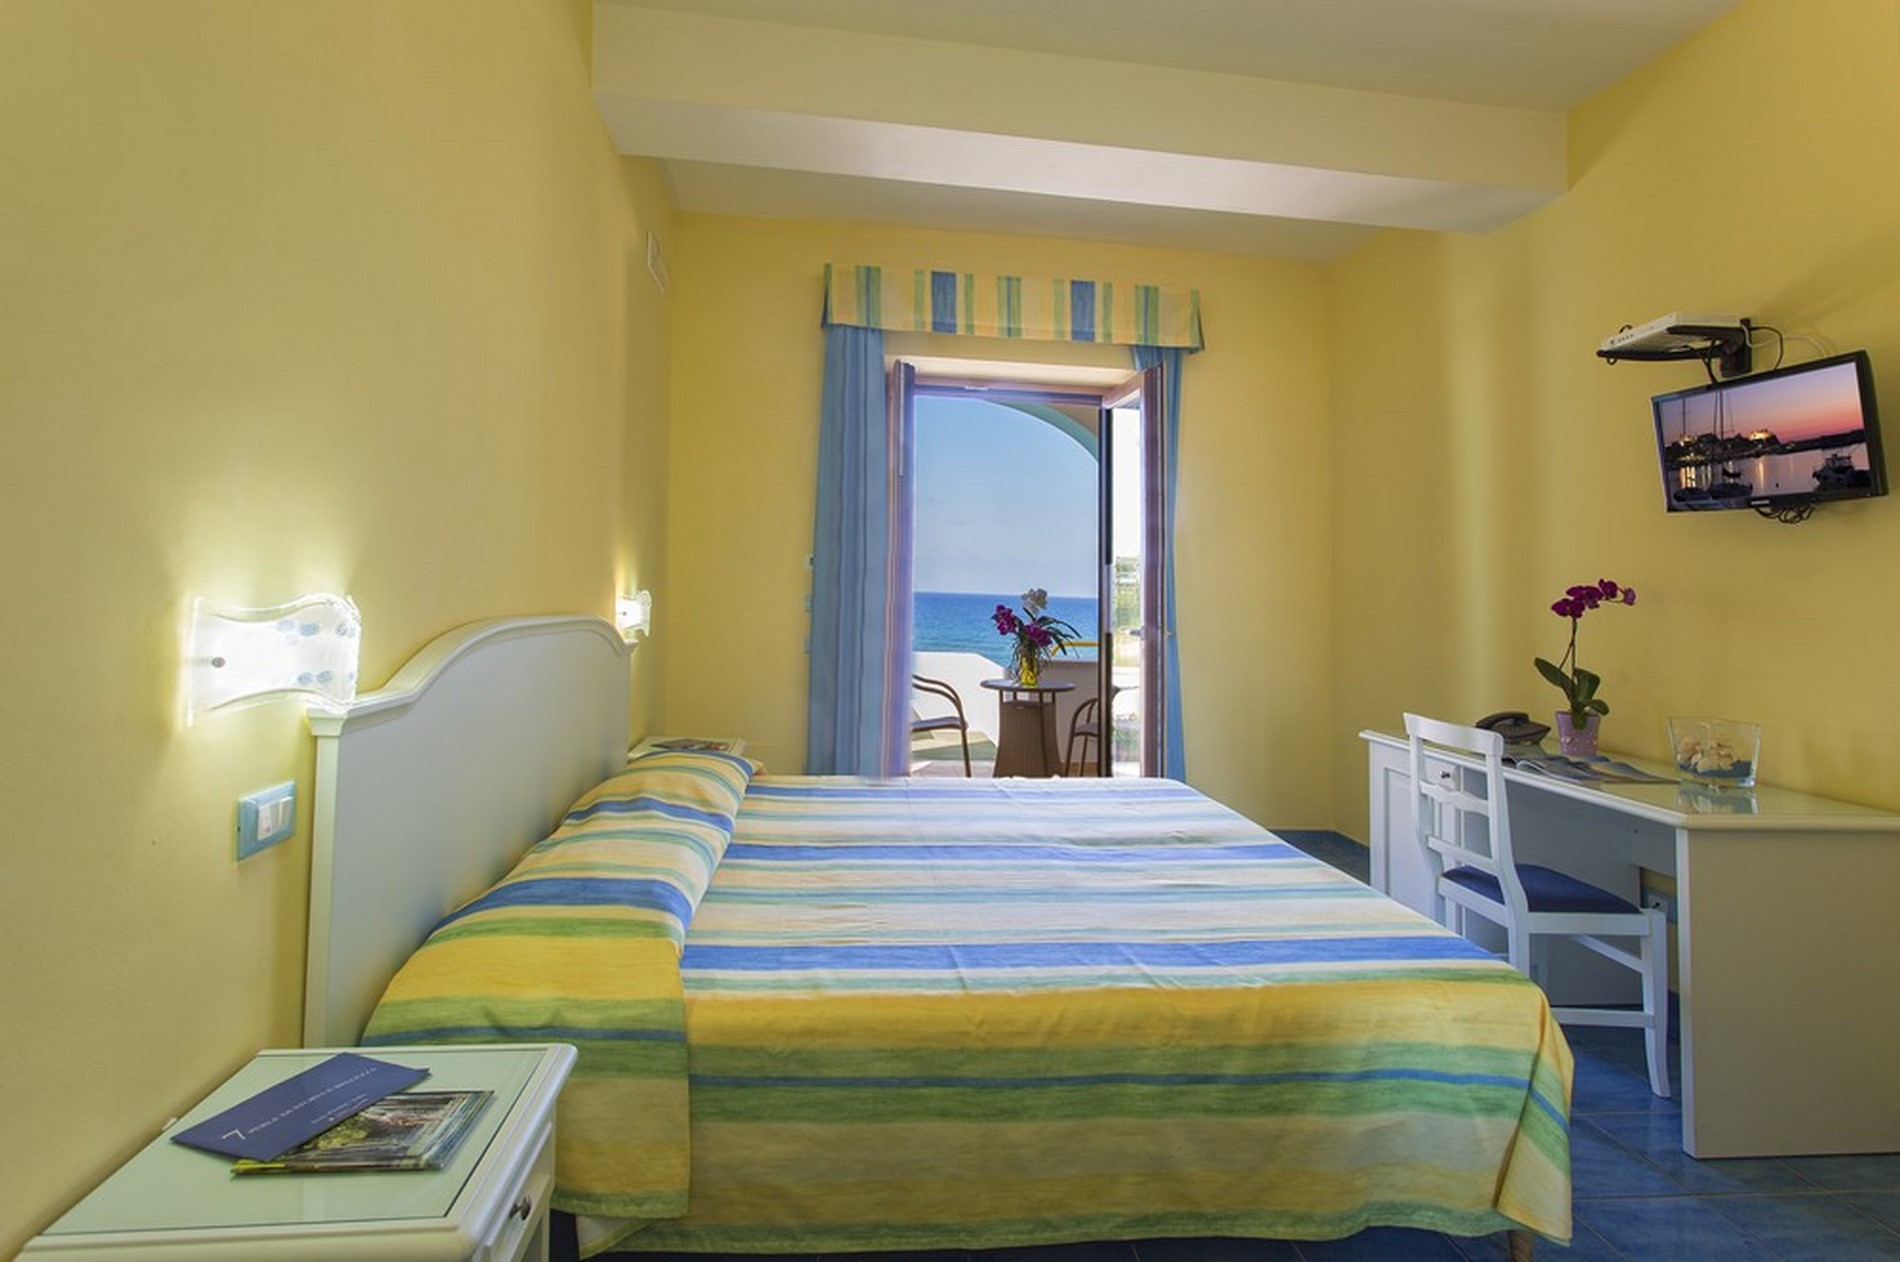 http://www.hotelcavadellisola.it/wp-content/uploads/2016/02/91A1060-Copia.jpg